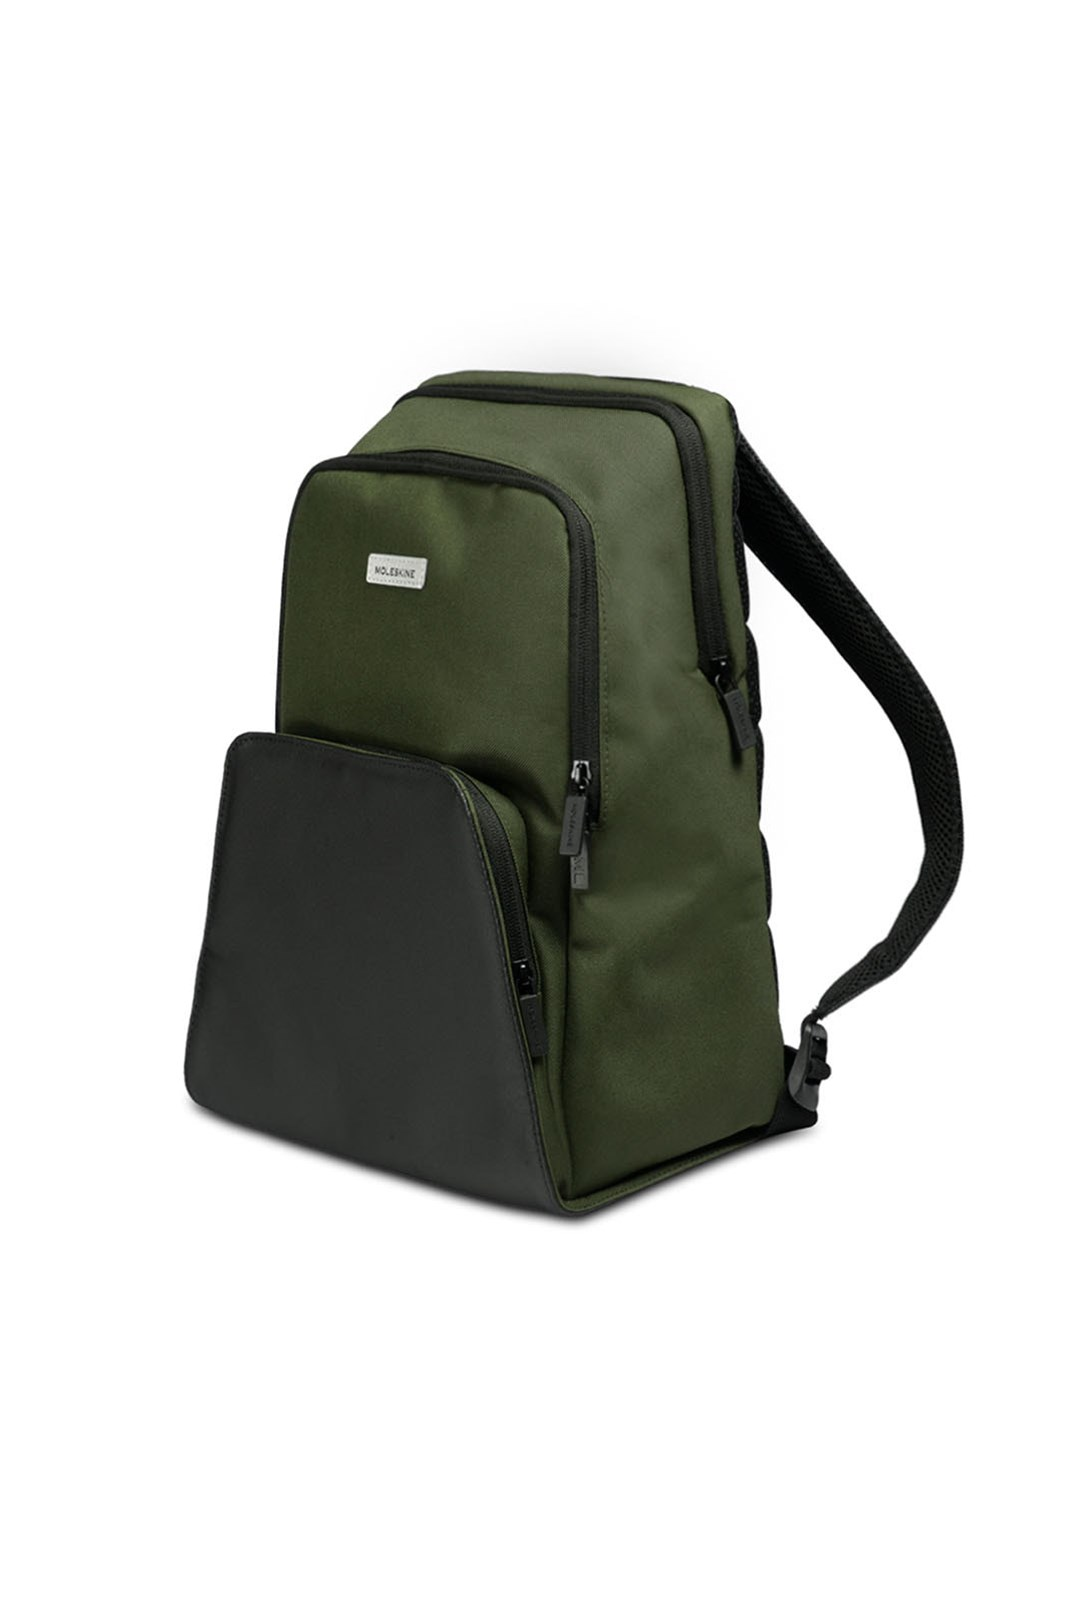 Moleskine - Nomad Backpack - Medium - Conifer Green